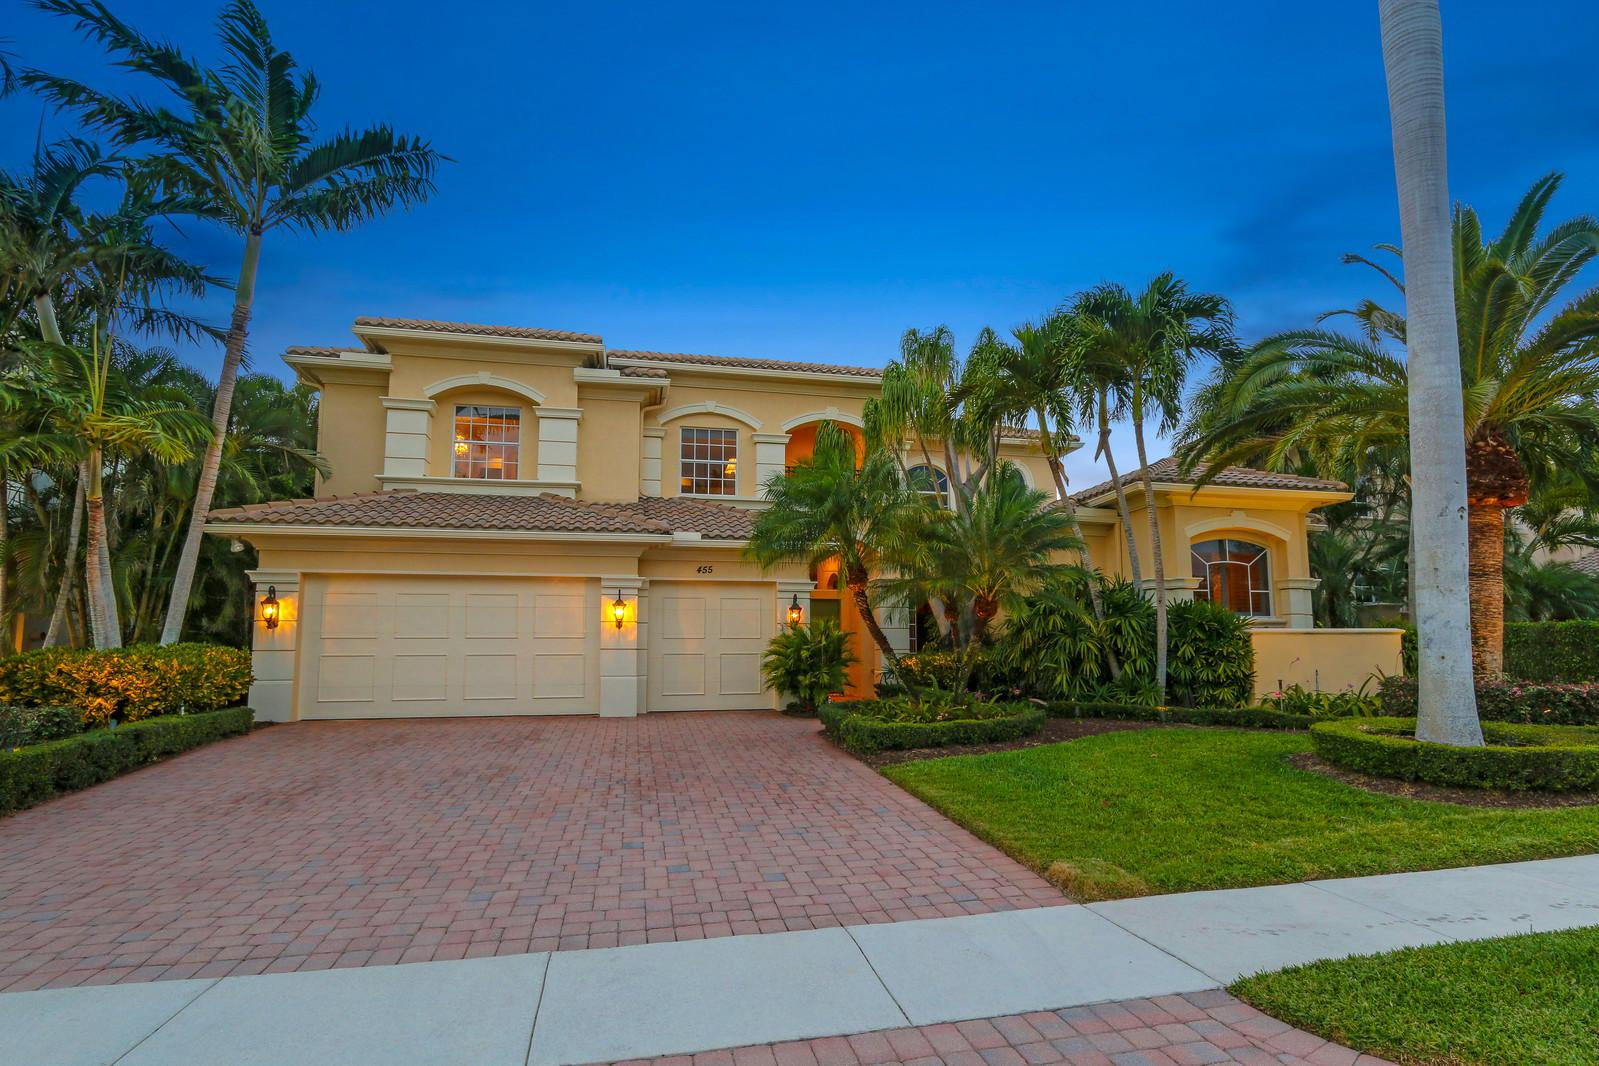 Frenchmans Reserve Homes for Sale & Real Estate, Palm Beach Gardens ...